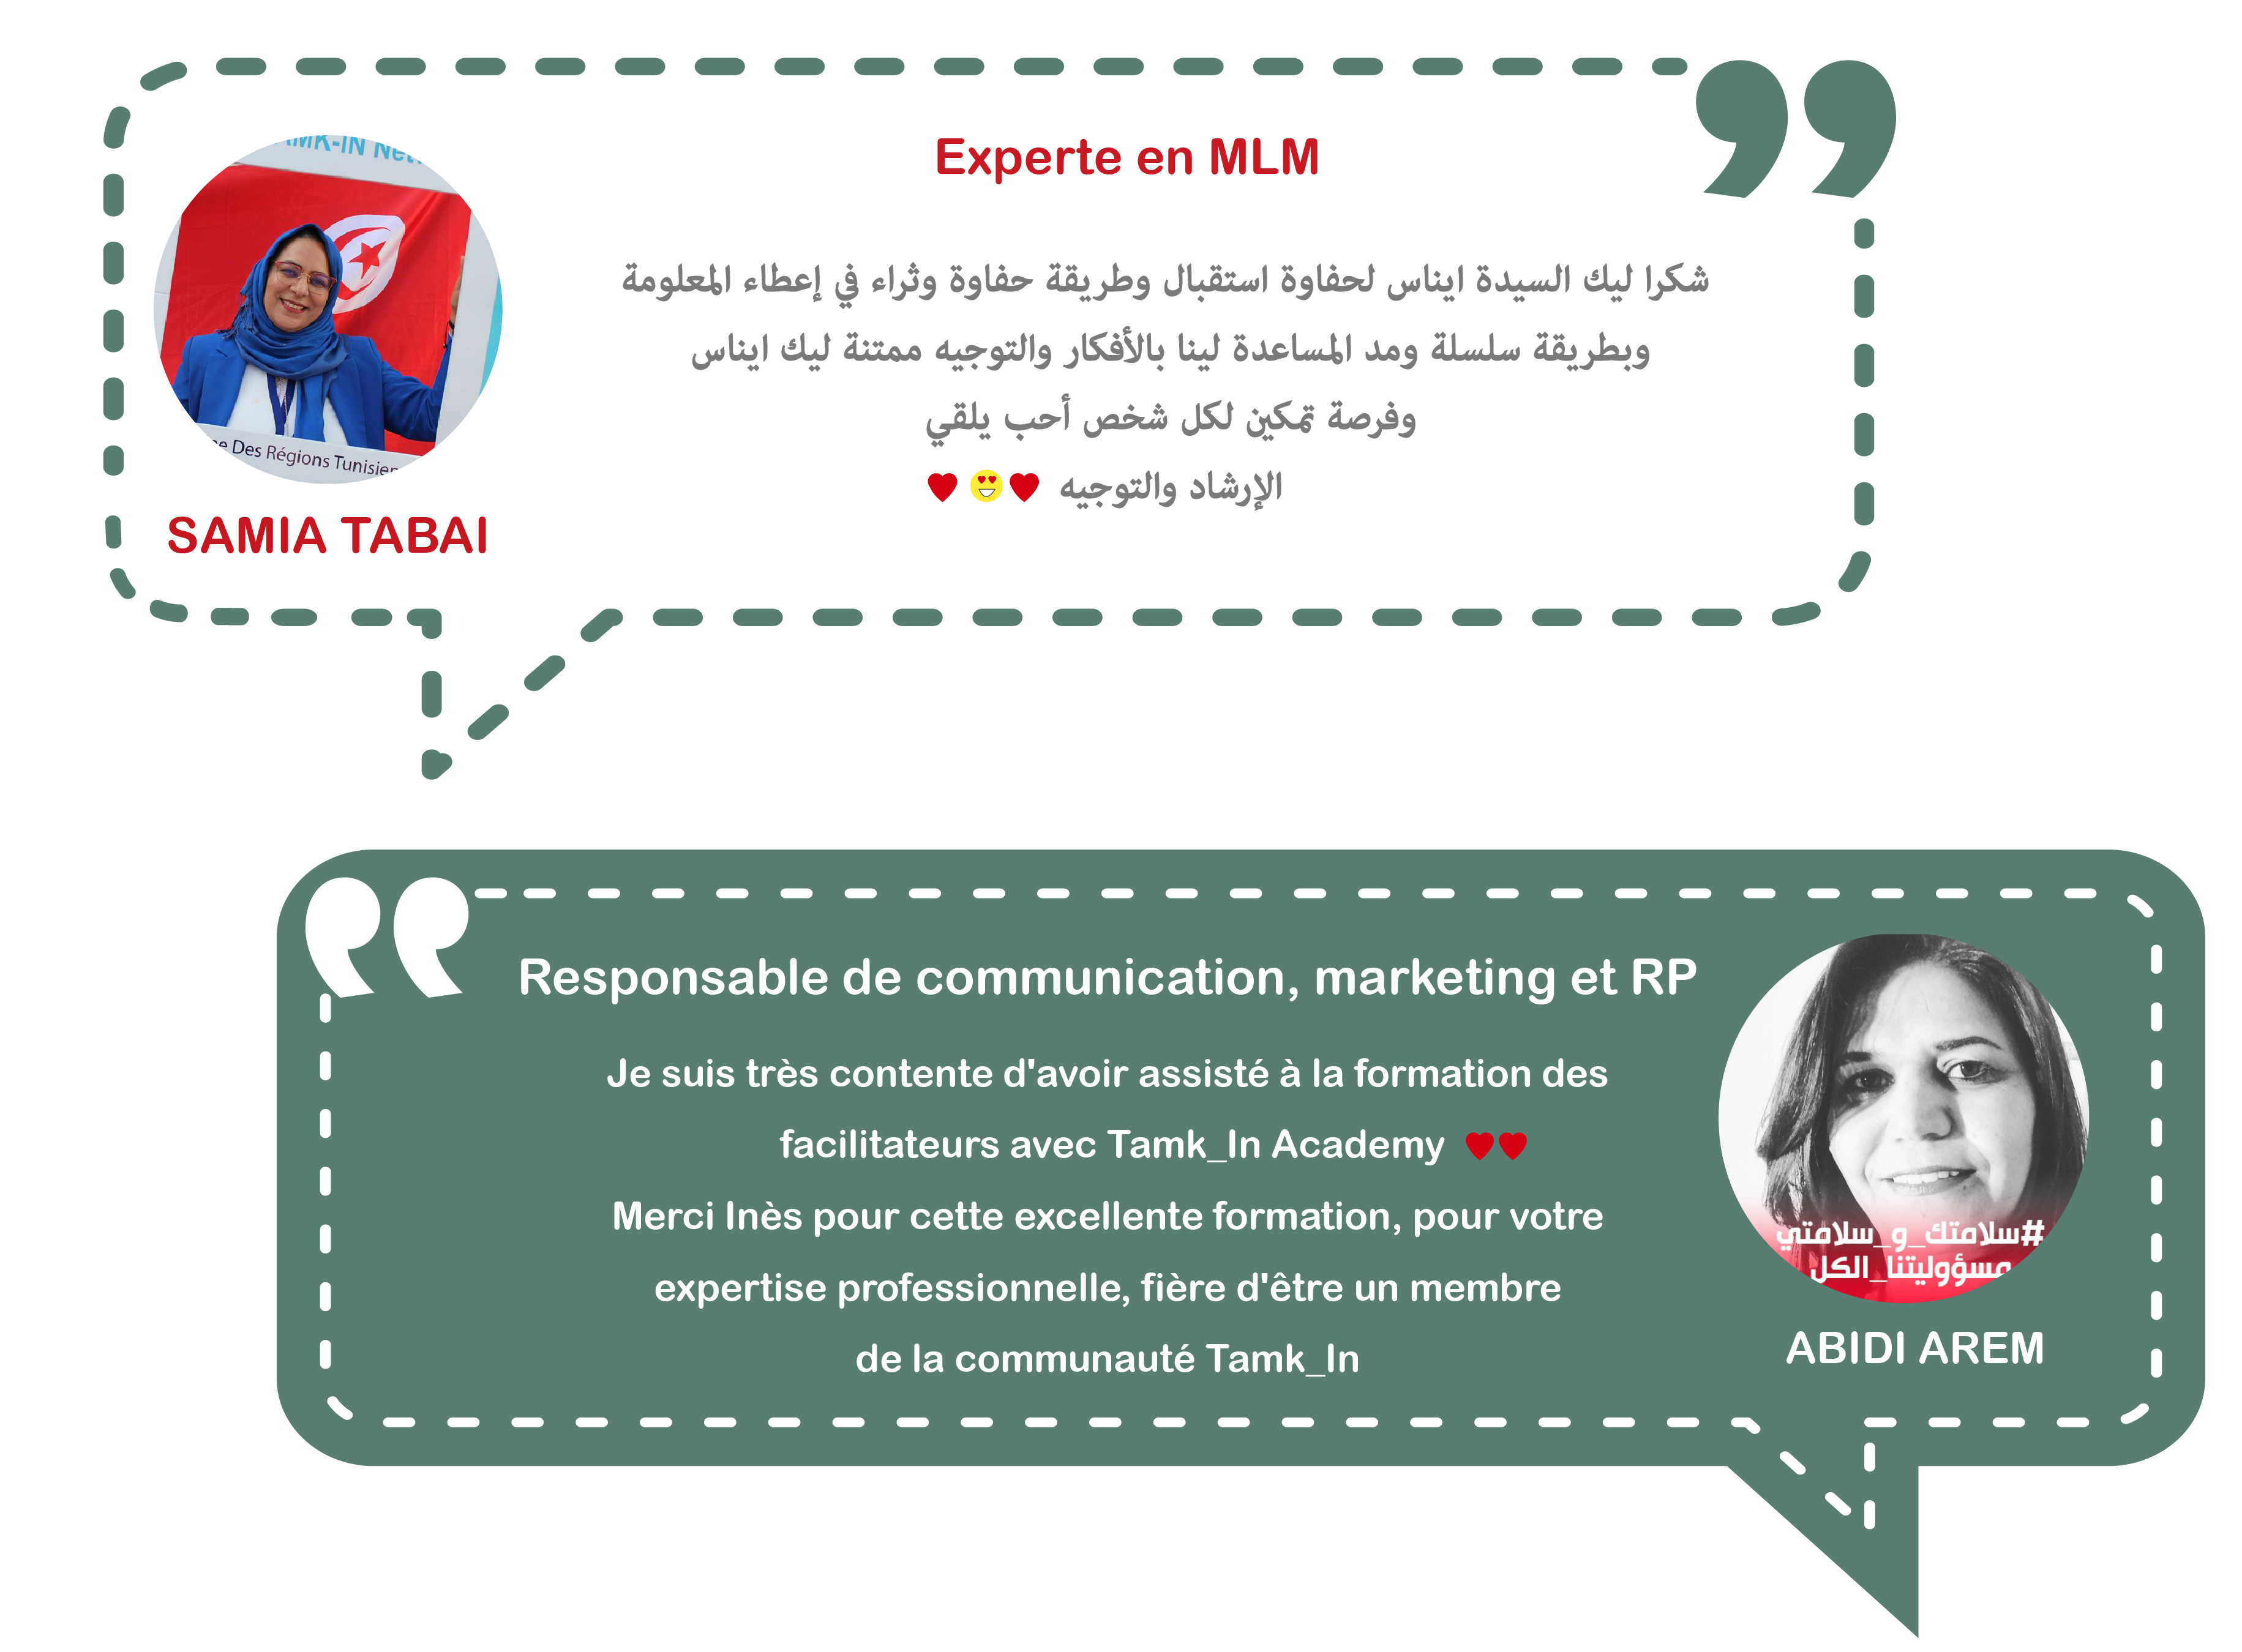 2020/04/NB-4_Plan-de-travail-1_Plan-de-travail-1_Plan-de-travail-1.png